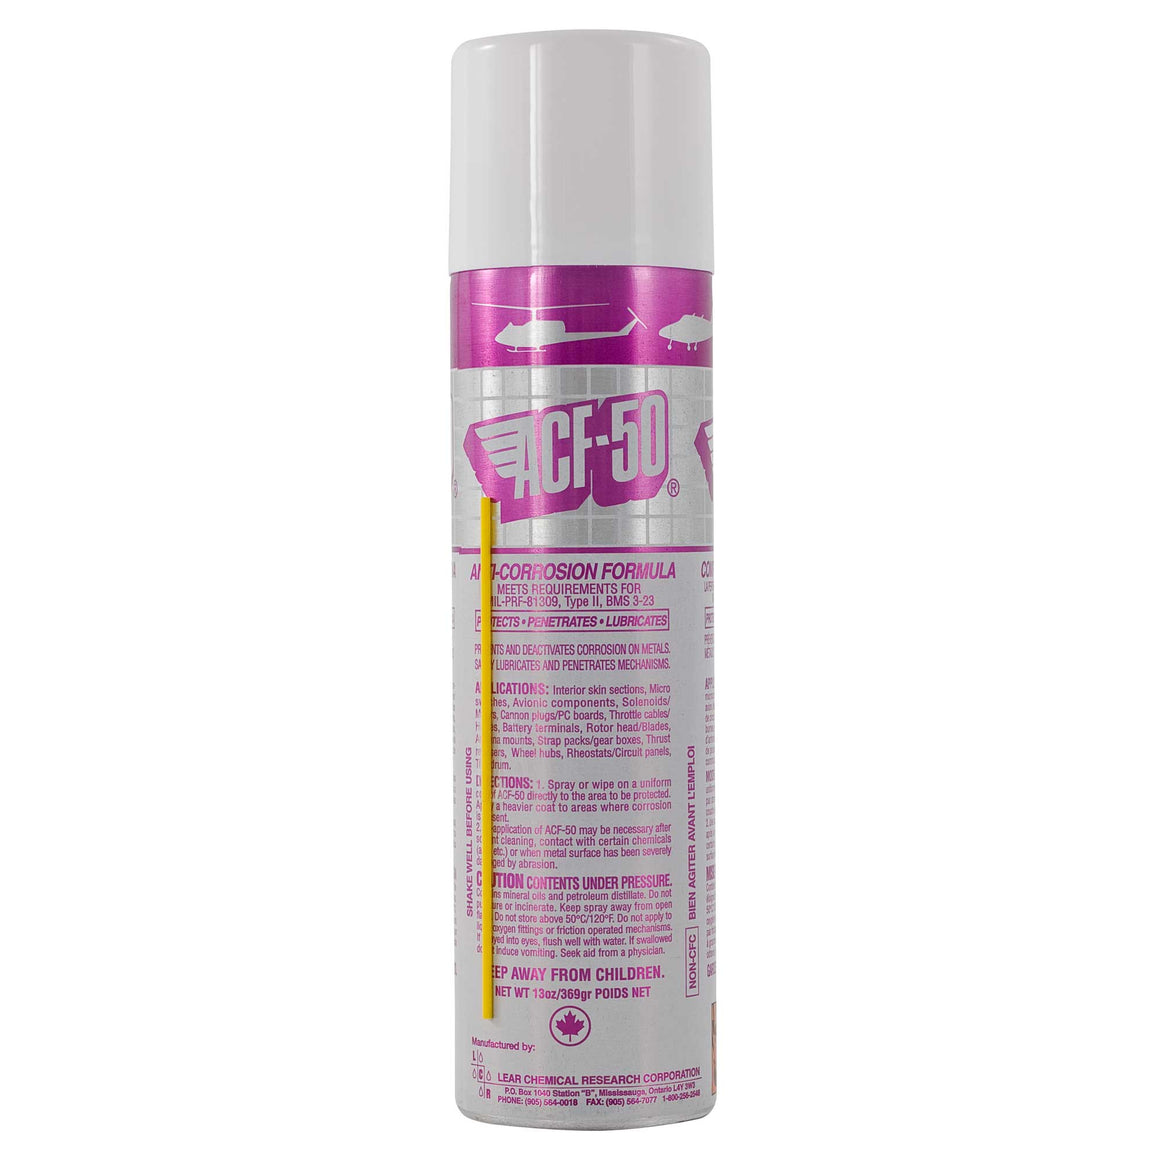 ACF-50 Anti-Corrosion Spray 13OZ/369GR